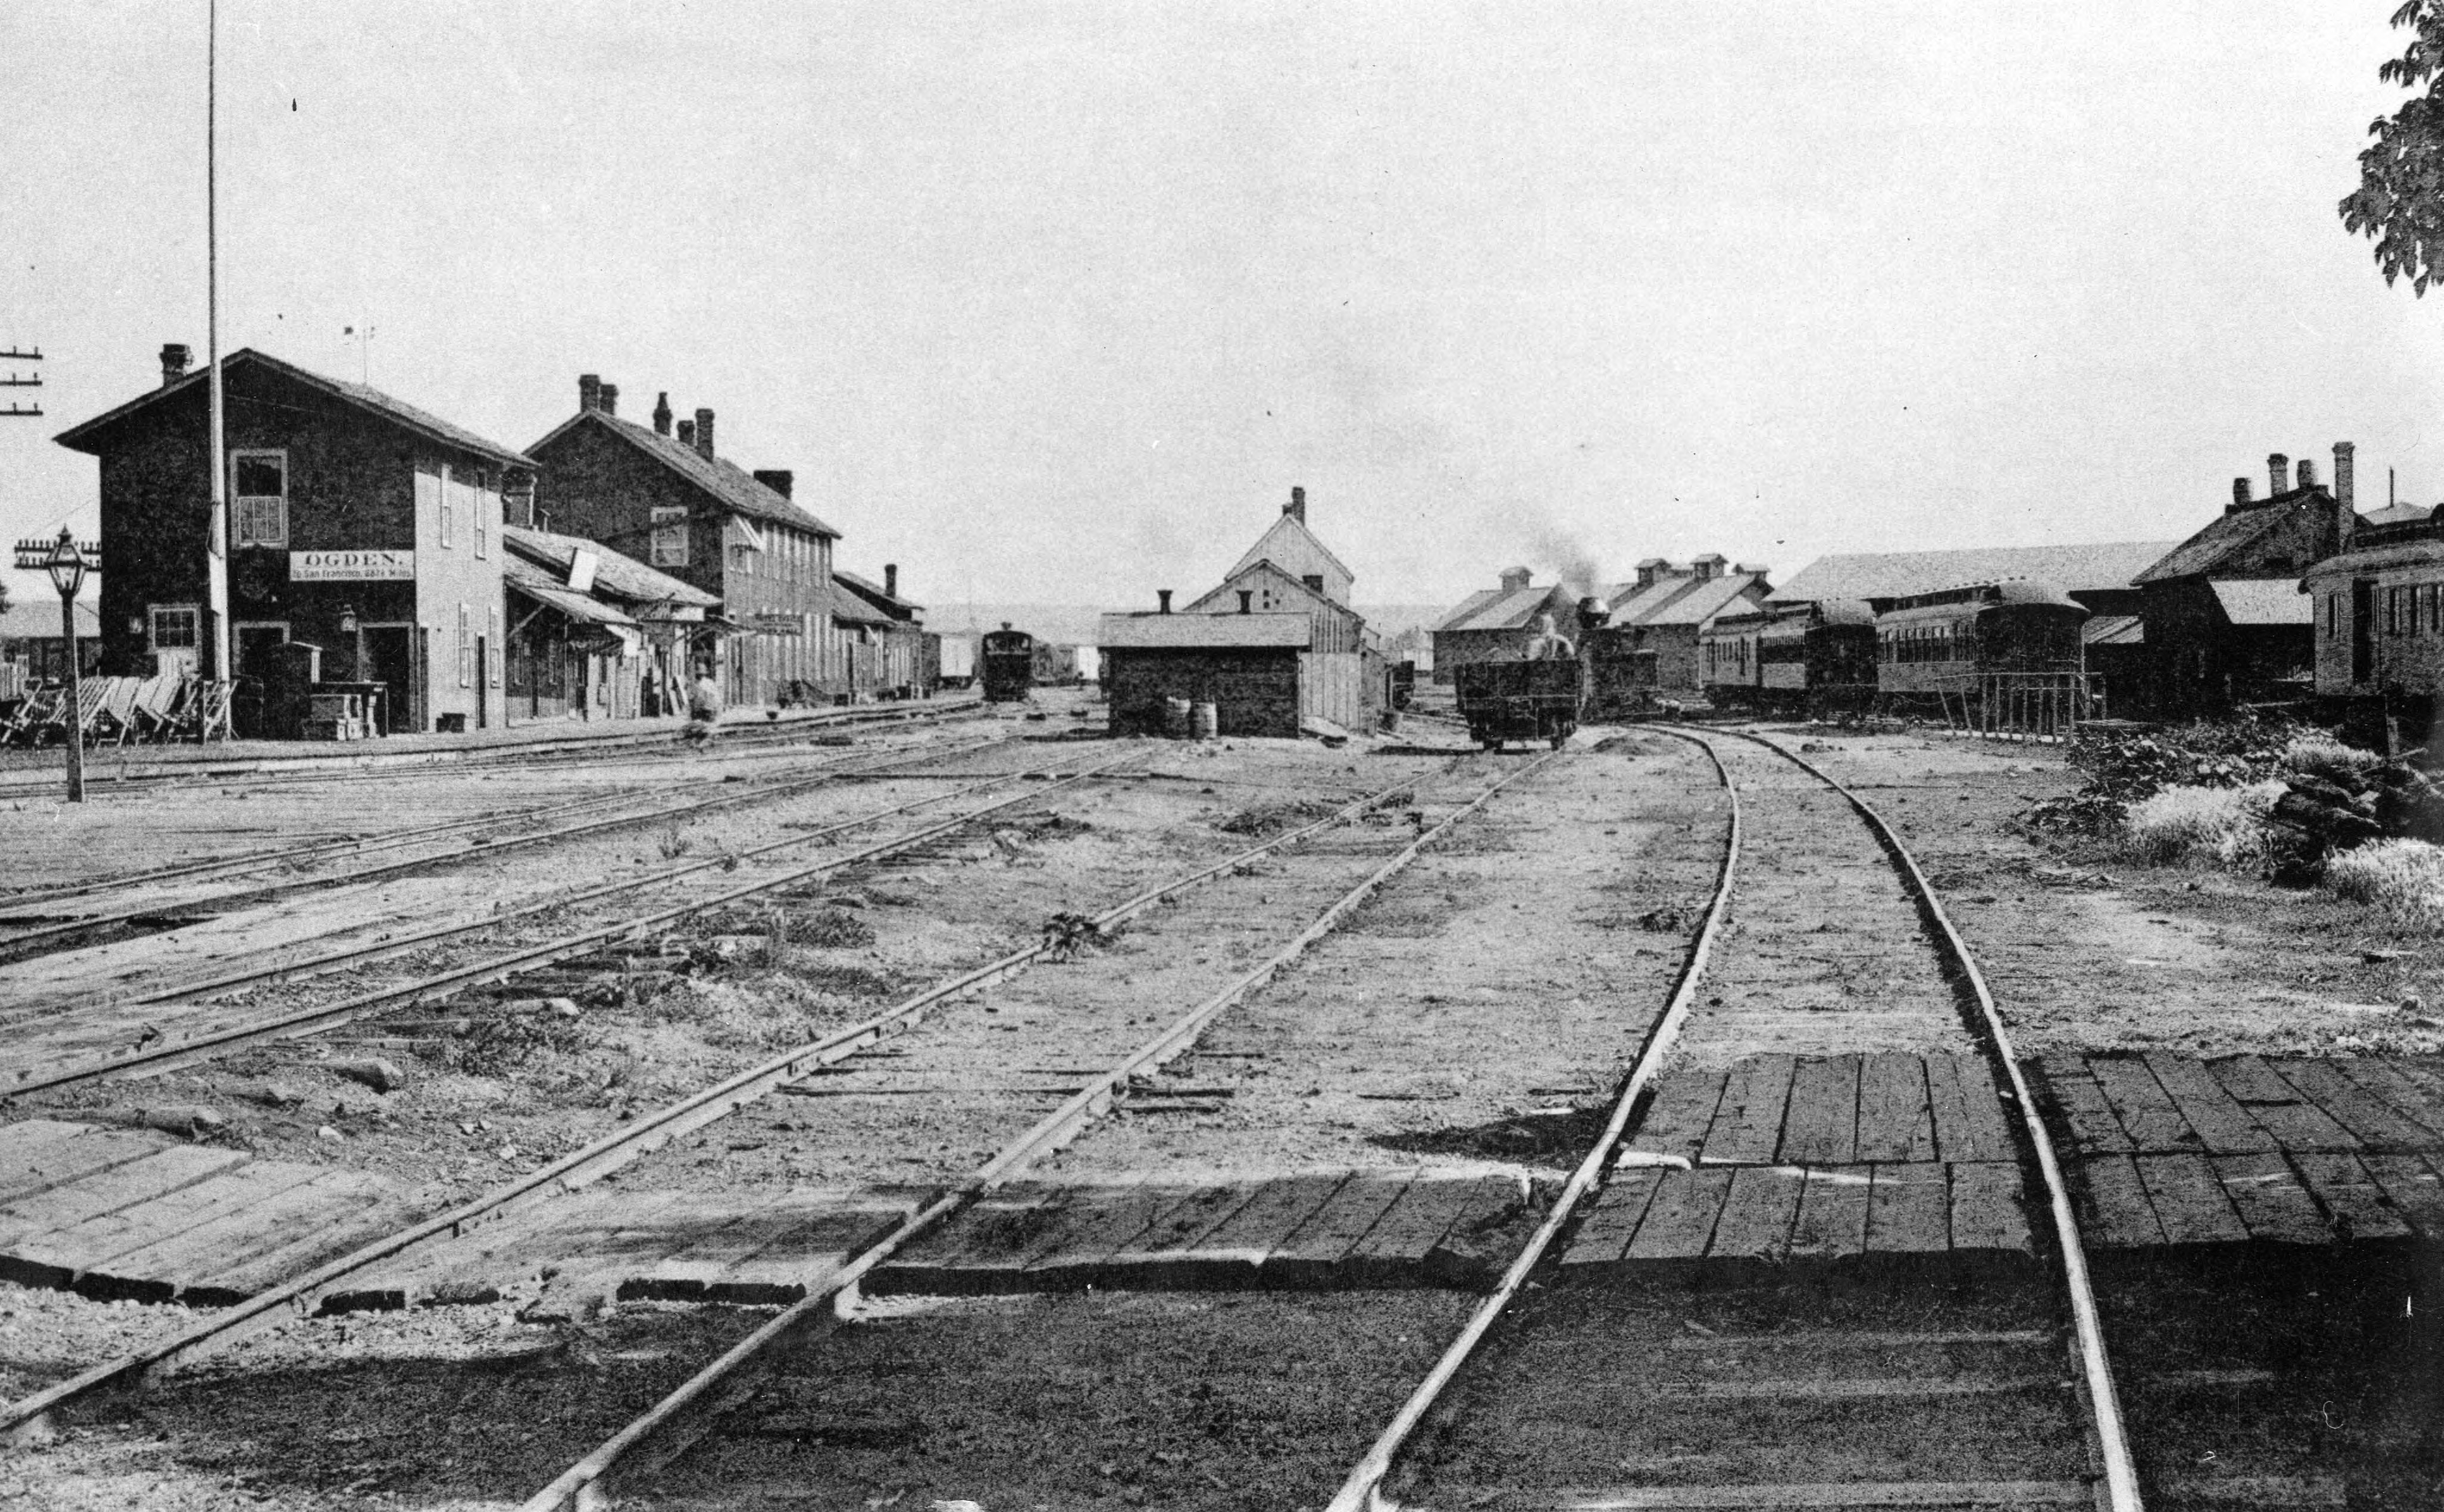 The Union Depot railroad yards in Ogden, Utah, are photographed in 1896.